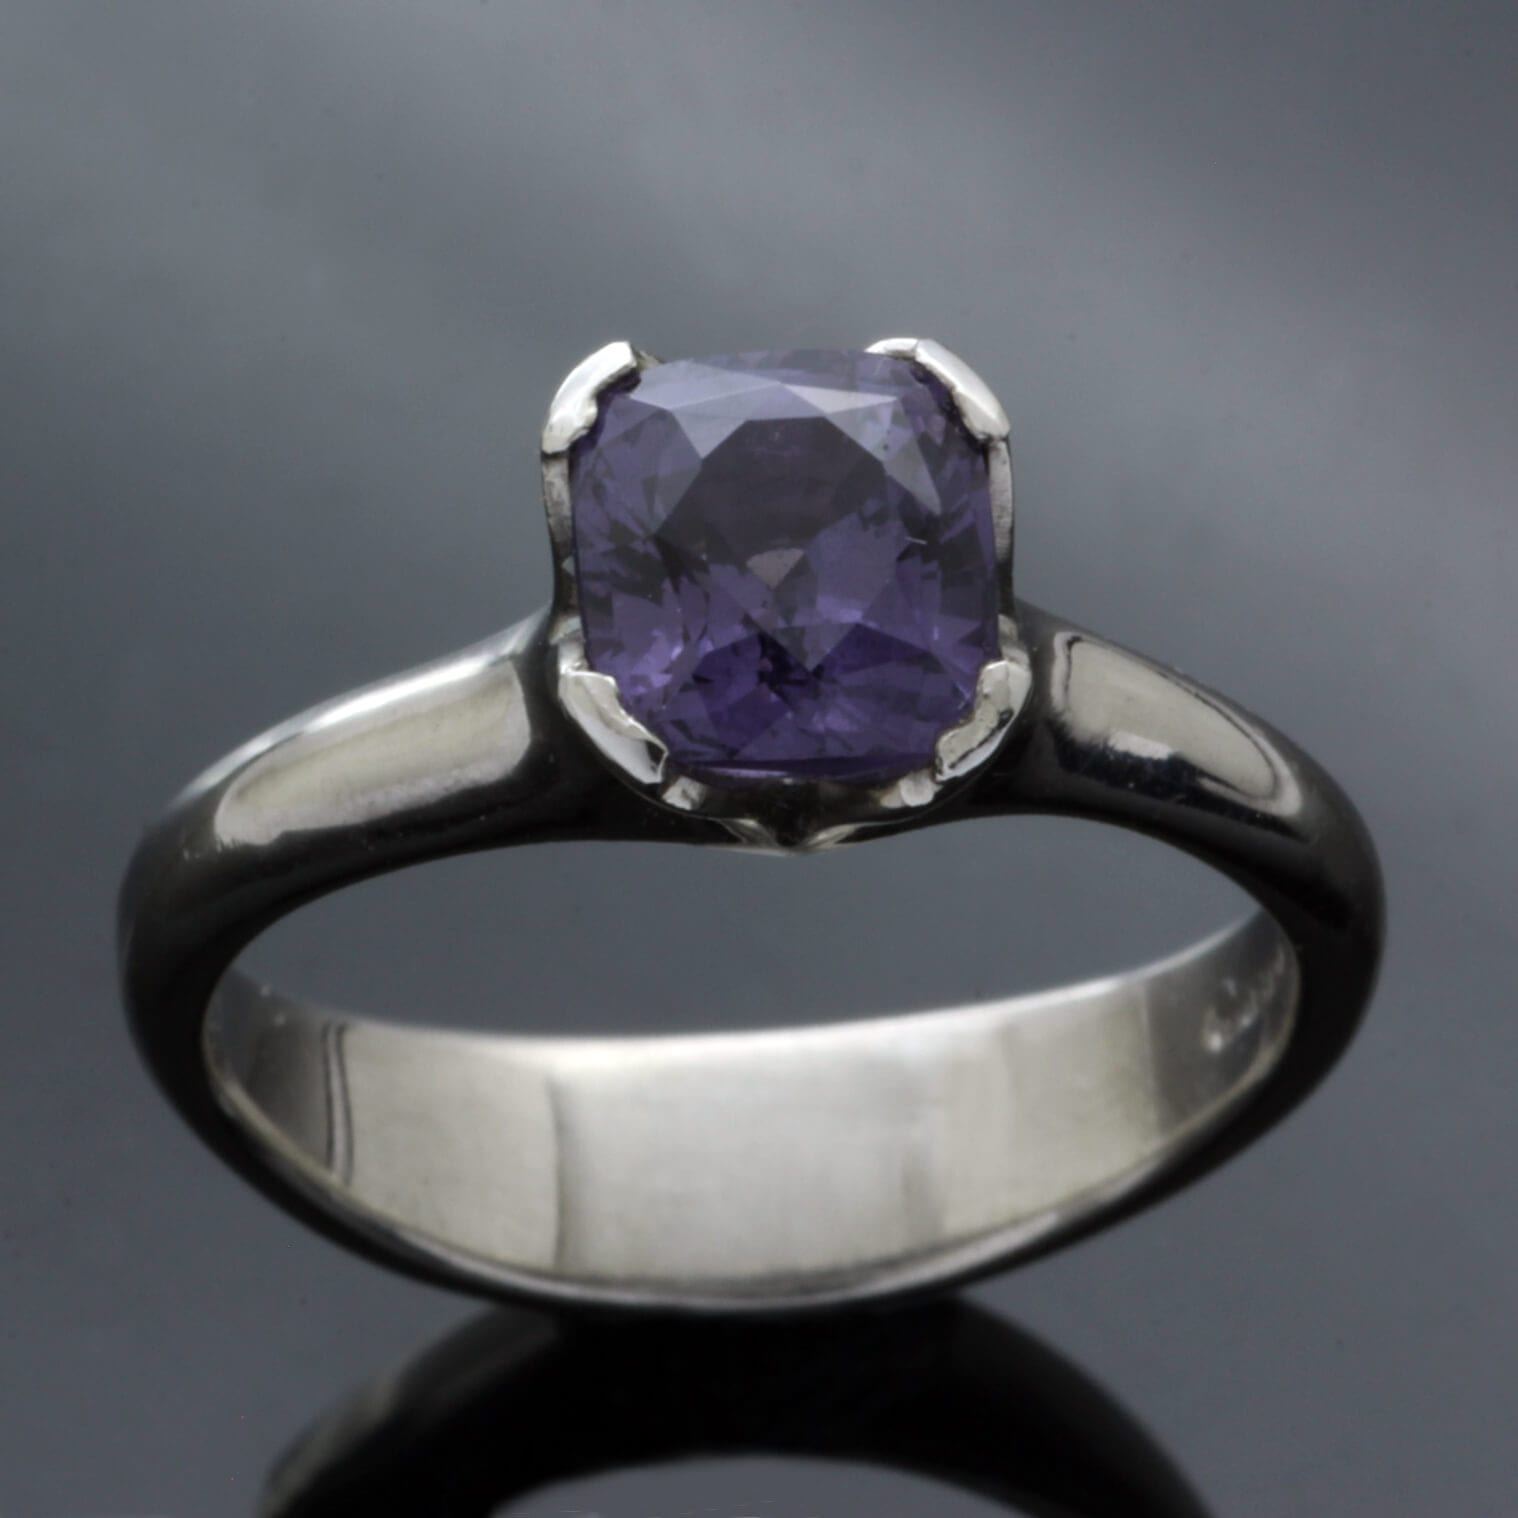 Mauve Spinel gemstone set in Palladium handmade engagement ring